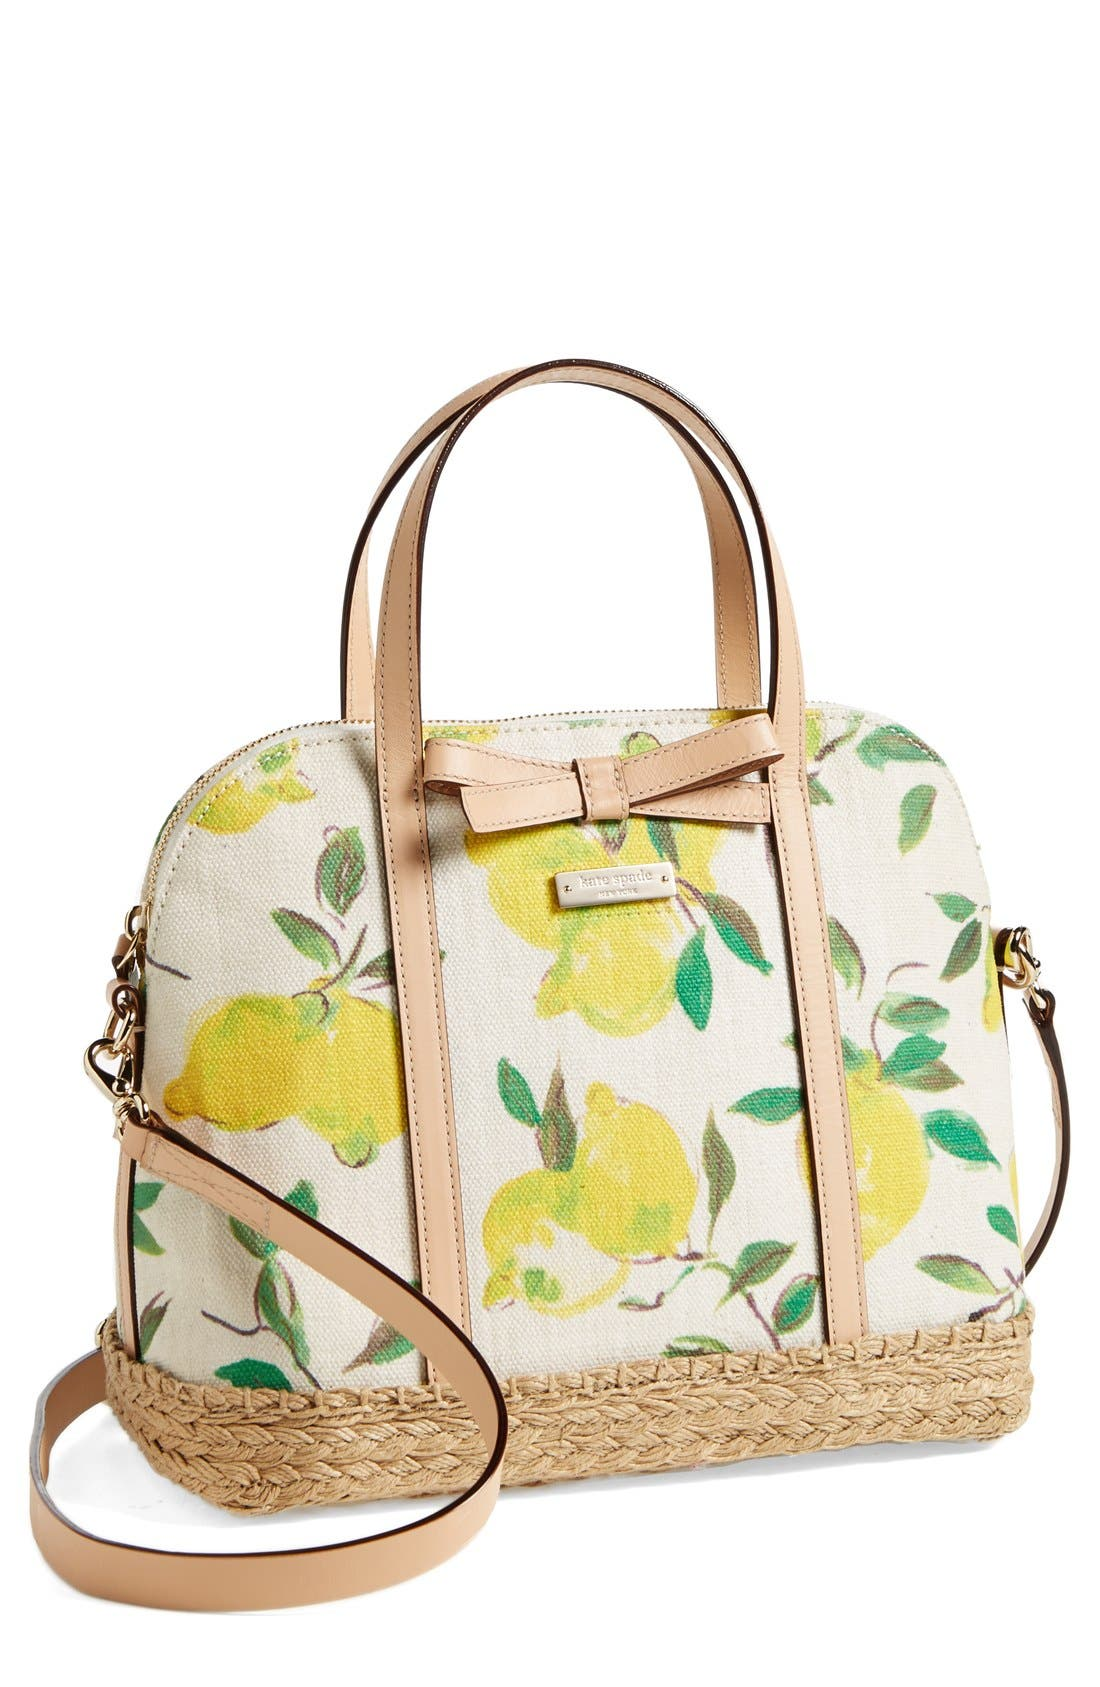 Alternate Image 1 Selected - kate spade new york 'maise - espadrille' satchel